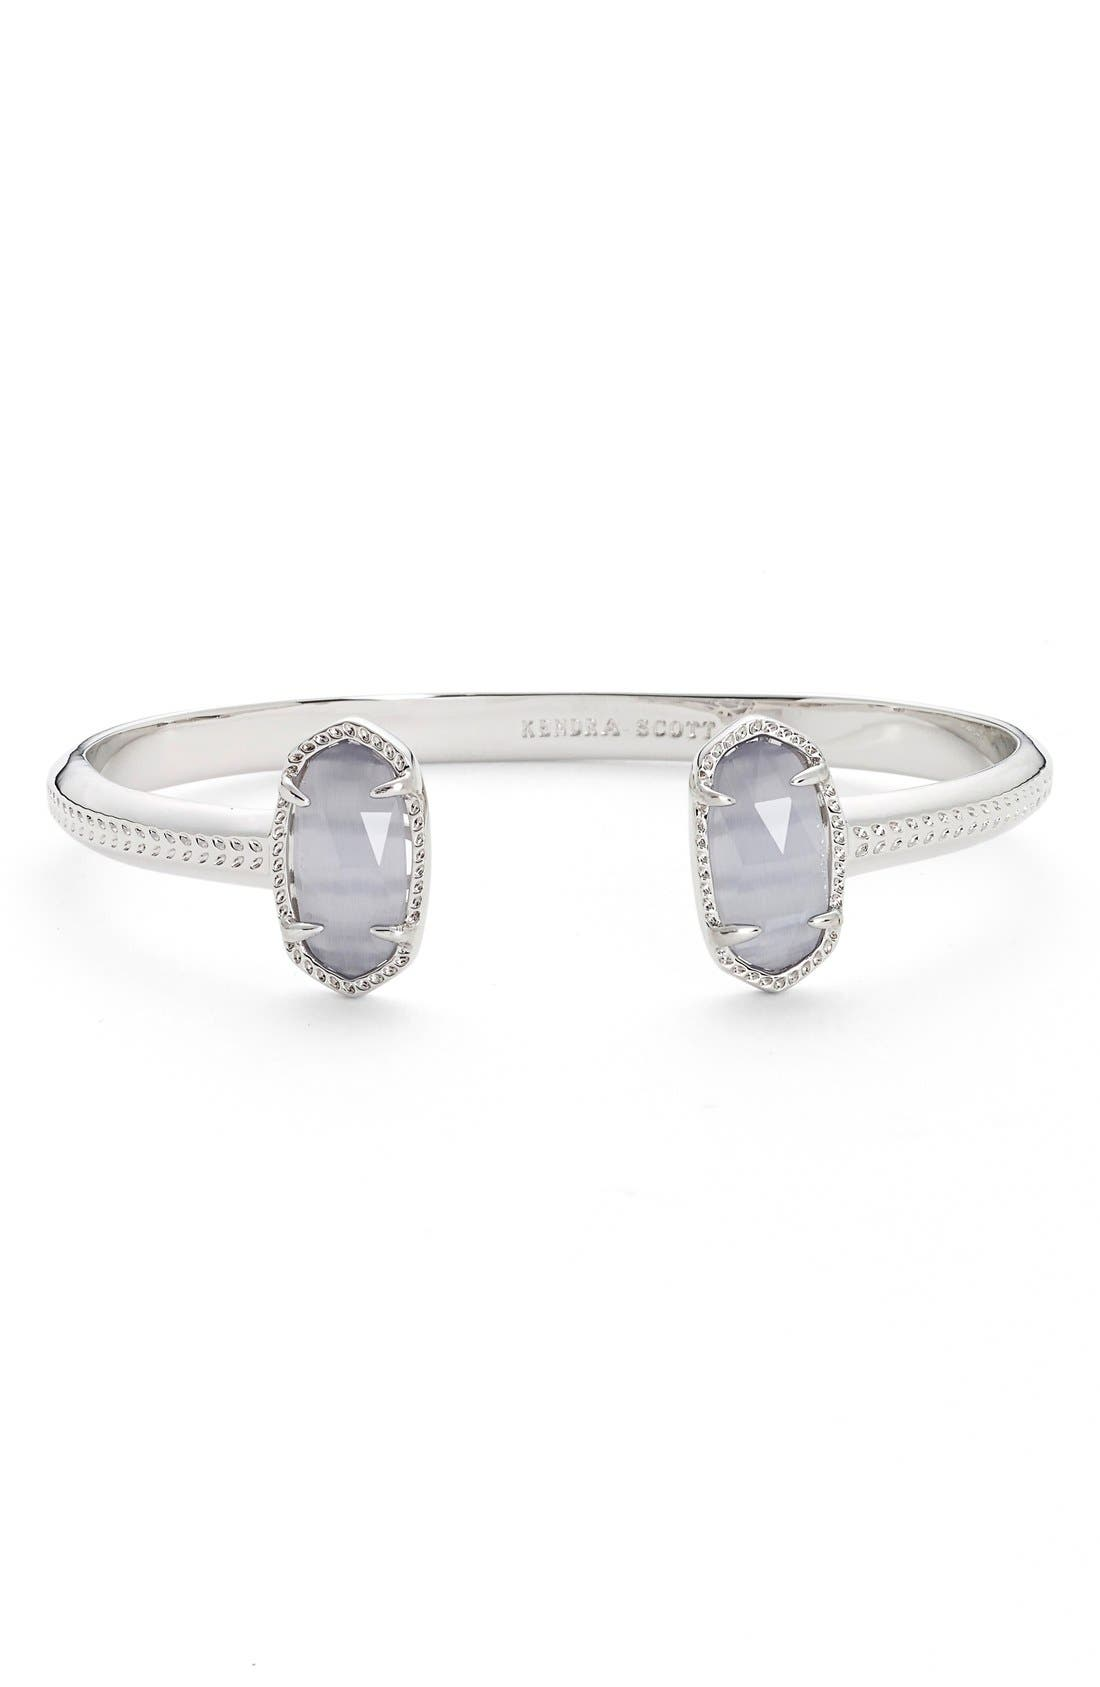 Alternate Image 1 Selected - Kendra Scott 'Elton' Station Cuff Bracelet